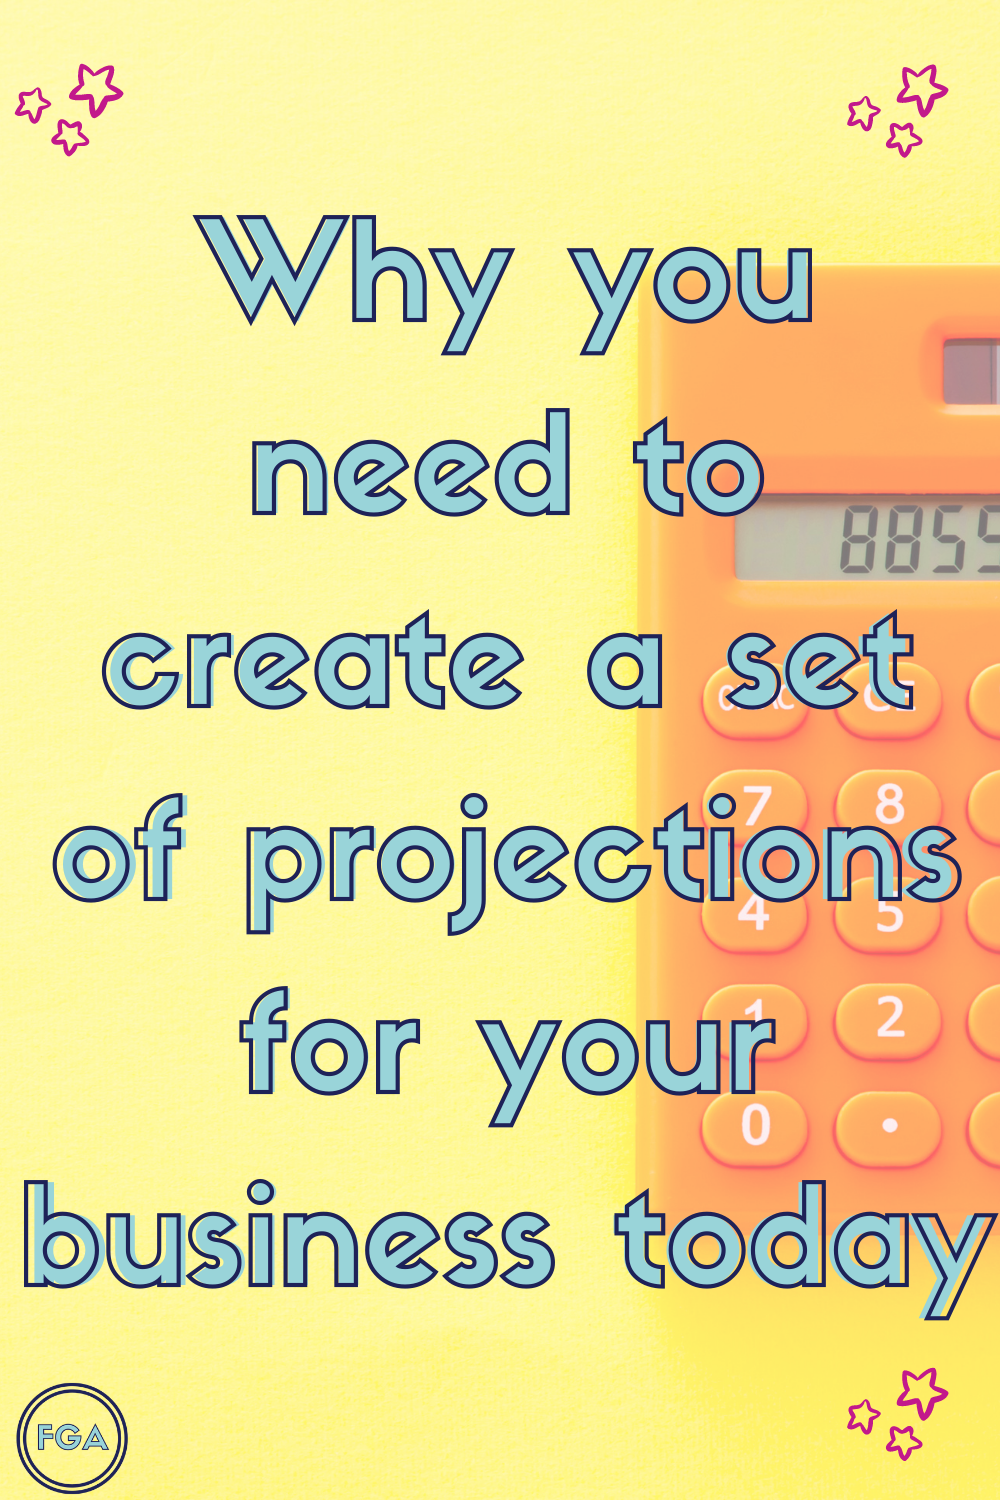 Why you need a set of Business Projections